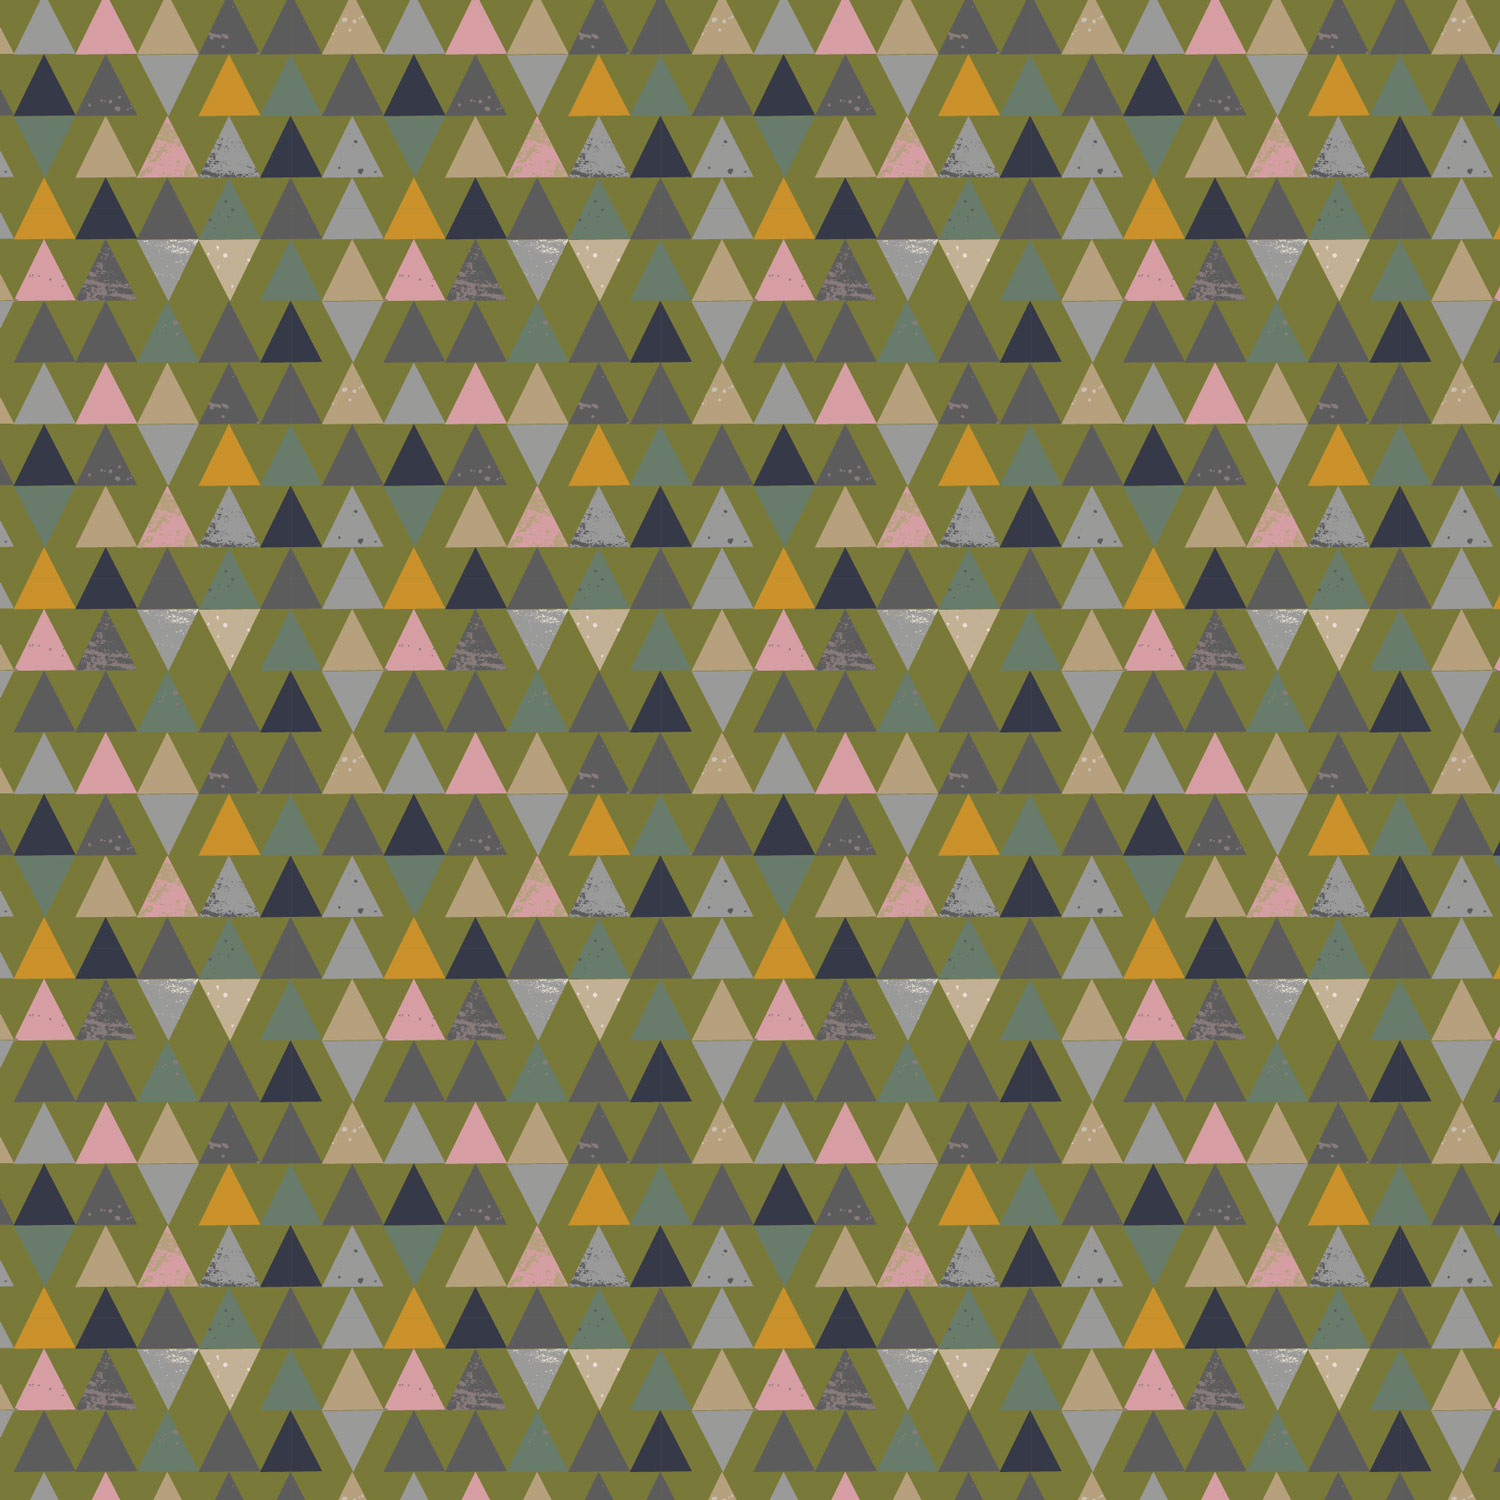 TRIANGLE_repeat-green.jpg